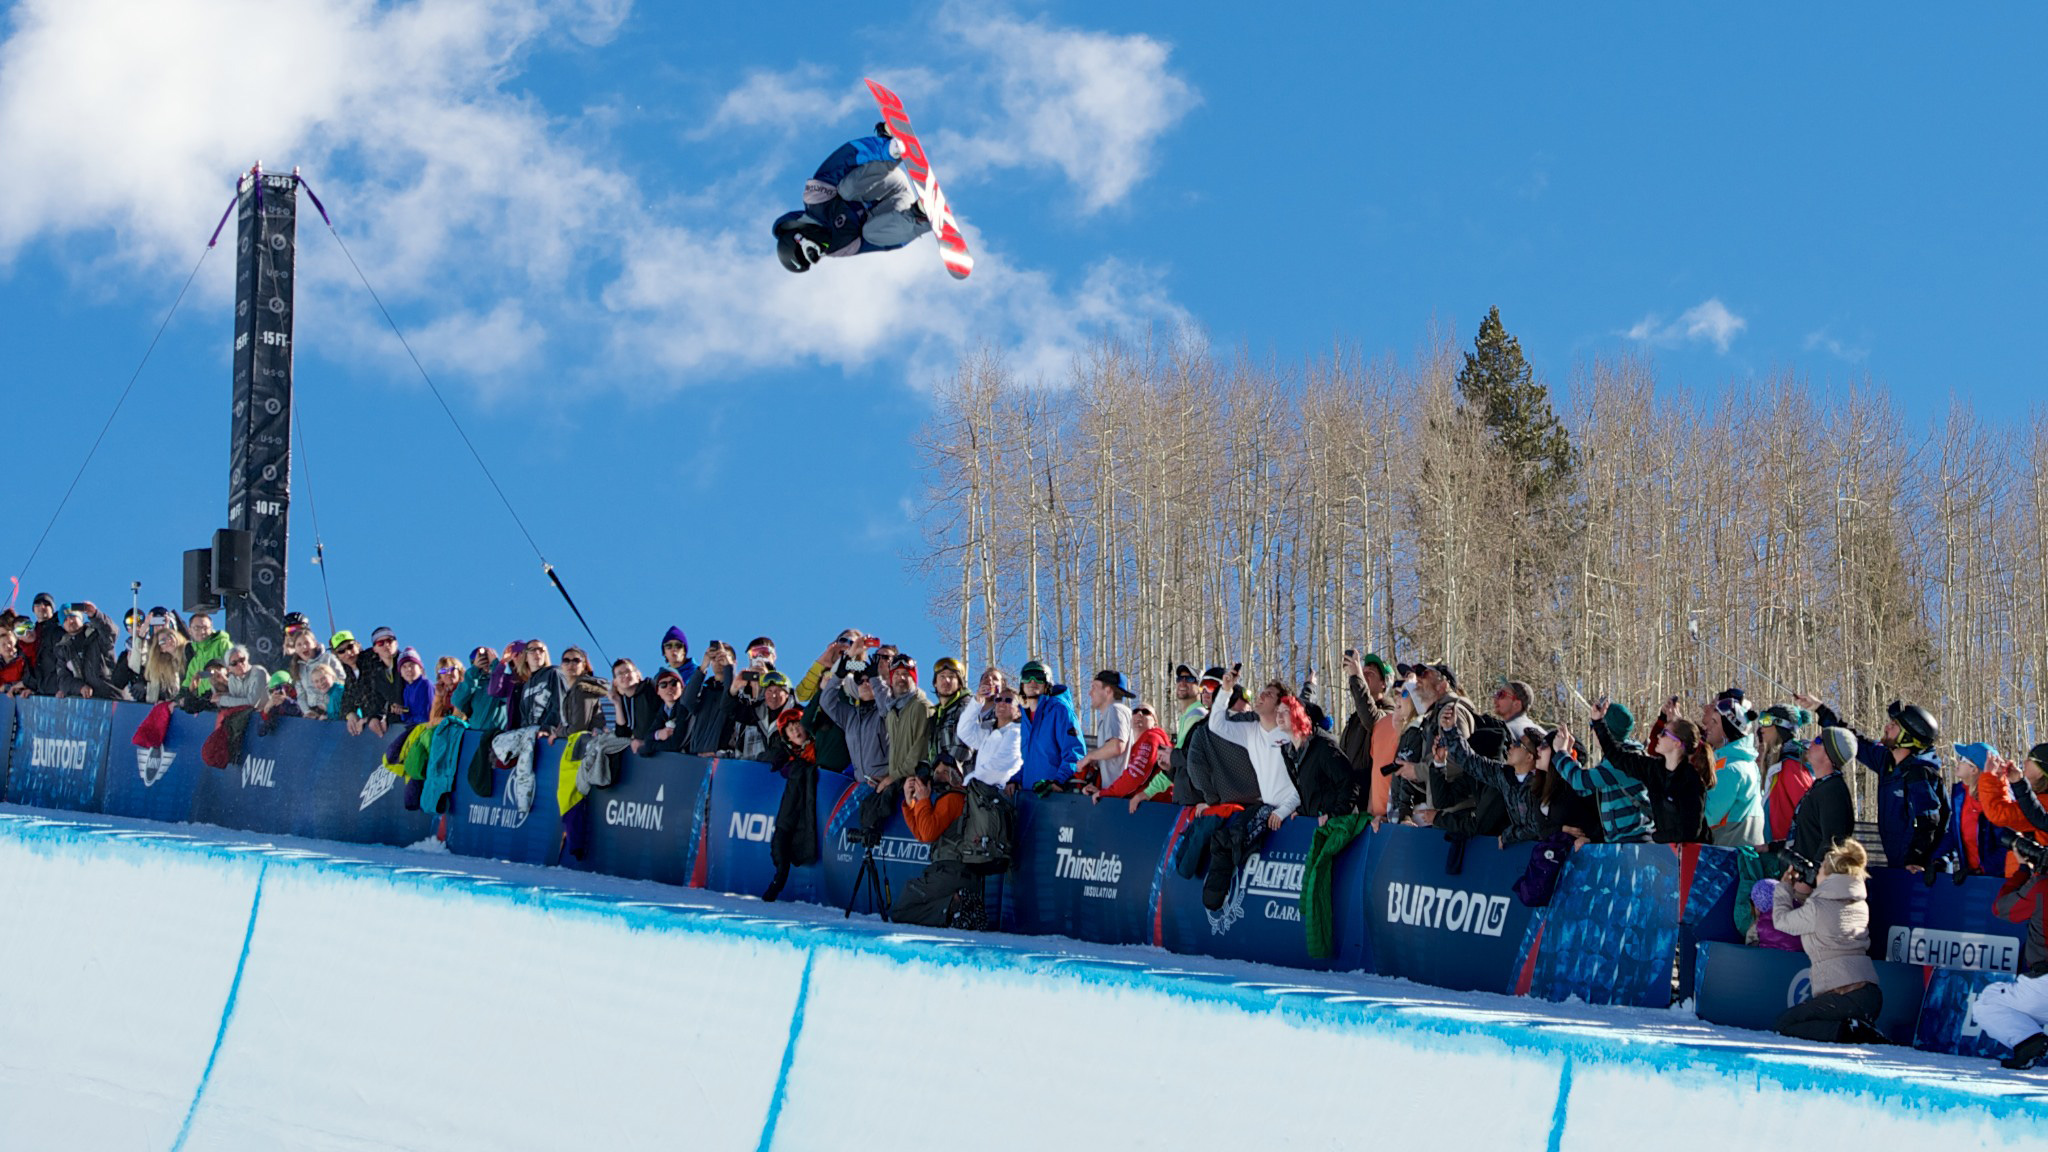 Zhang finished the semifinal halfpipe round at the 2014 Burton U.S. Open in a dominating and impressive first position.